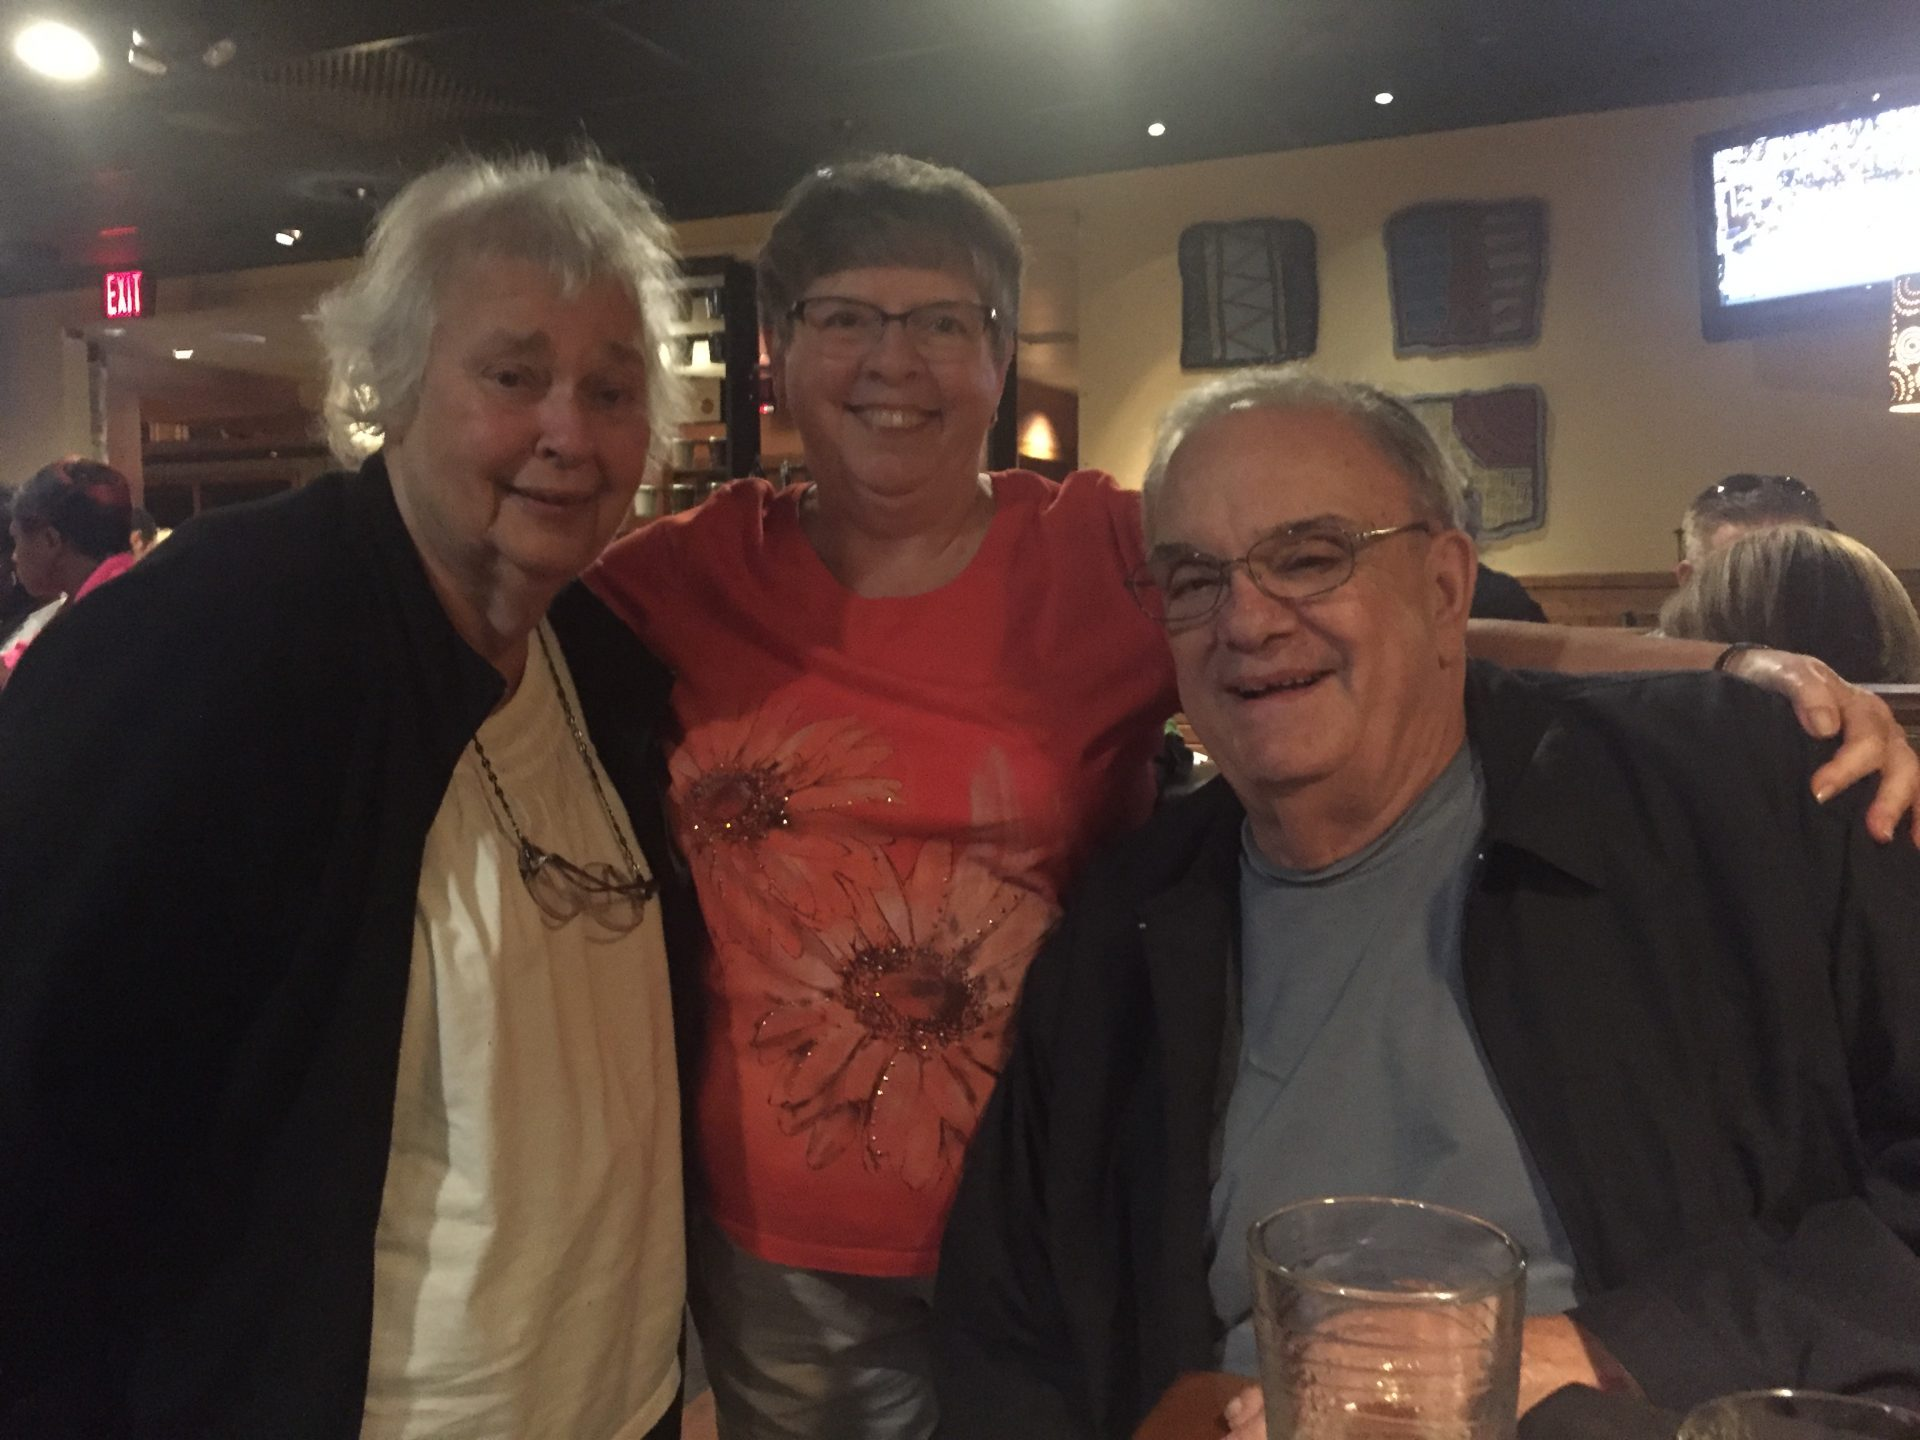 Dinner at Outback with Joan, John, and Camille Palombo on a visit to NC!